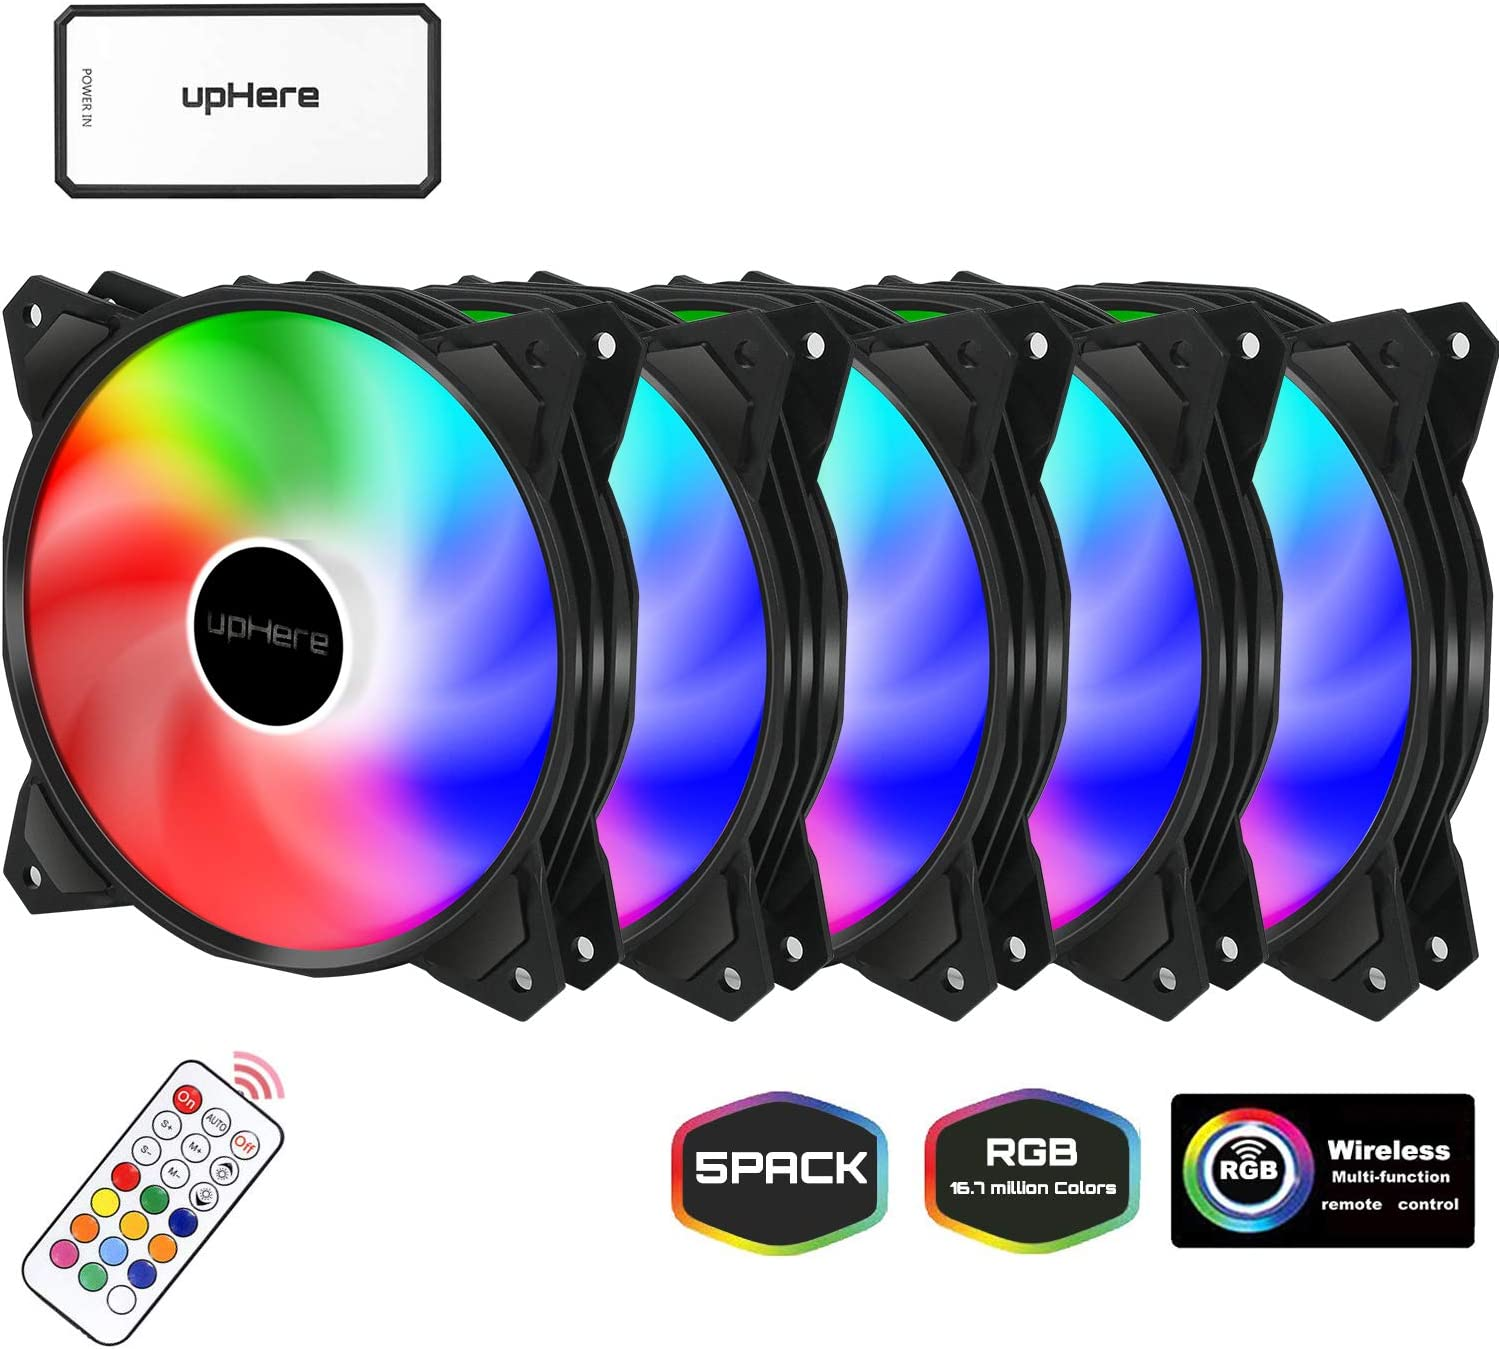 upHere 120mm Silent Intelligent Control Addressable RGB Fan Adjustable Colorful Fans with Controller and Remote,5-Pack,PF1206-5